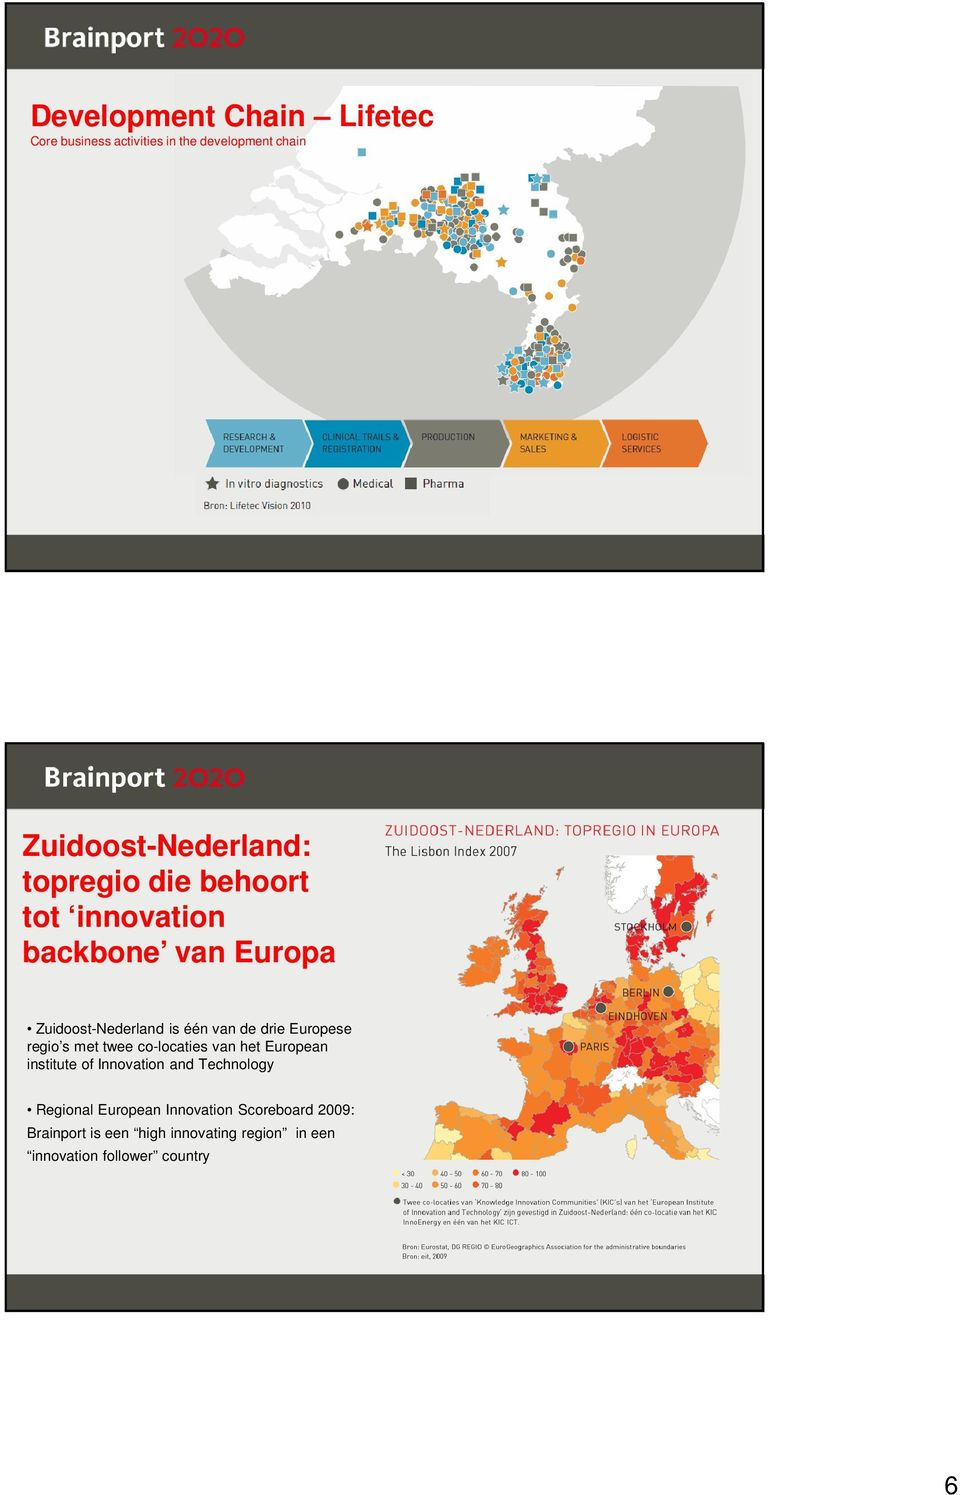 Europese regio s met twee co-locaties van het European institute of Innovation and Technology